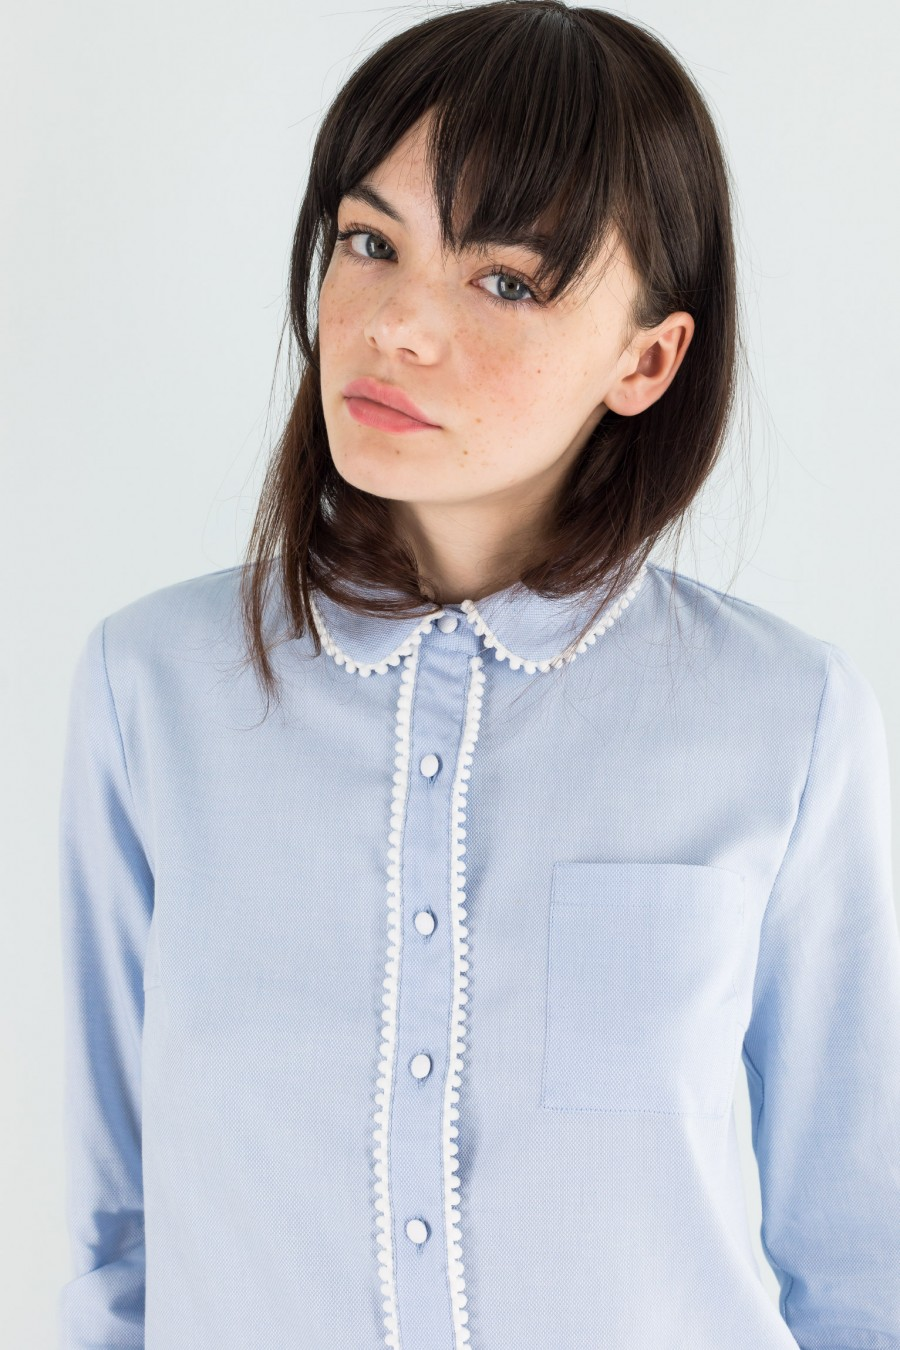 Light blue shirt with white pompons